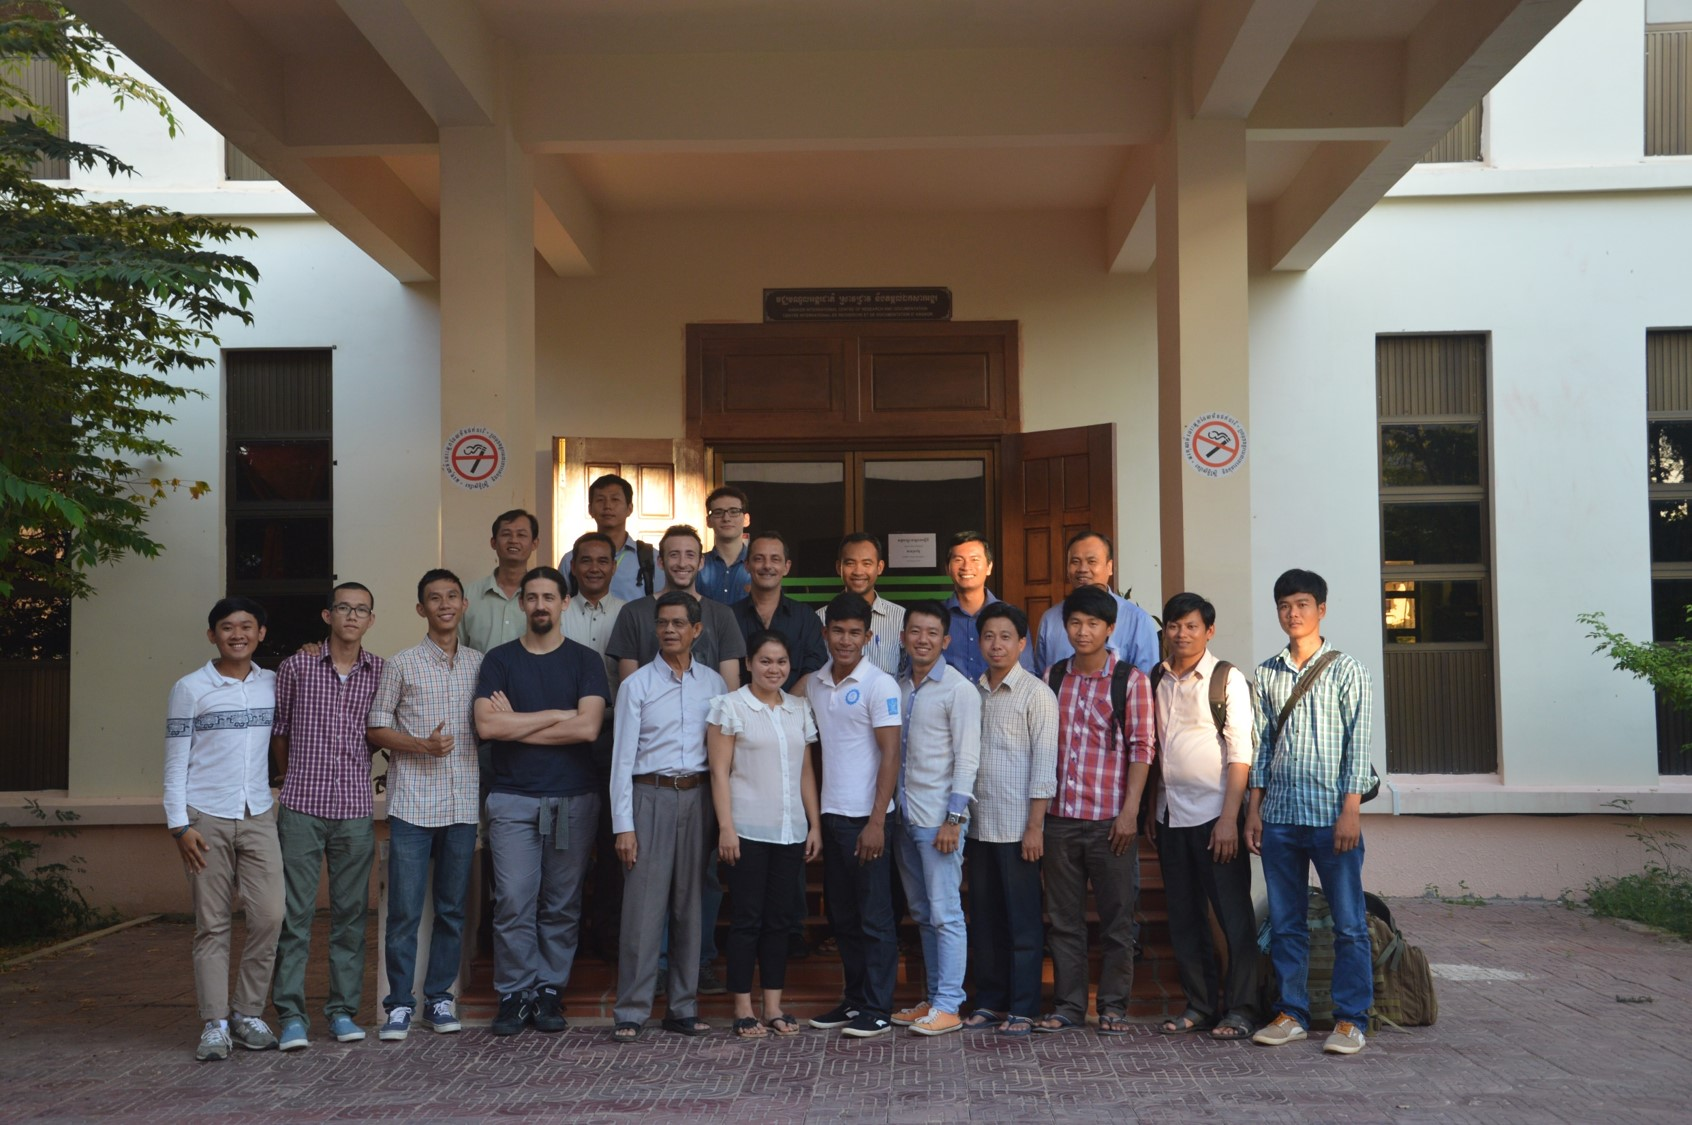 resources/other/trainingSession/SiemReap2015/photos/group.JPG